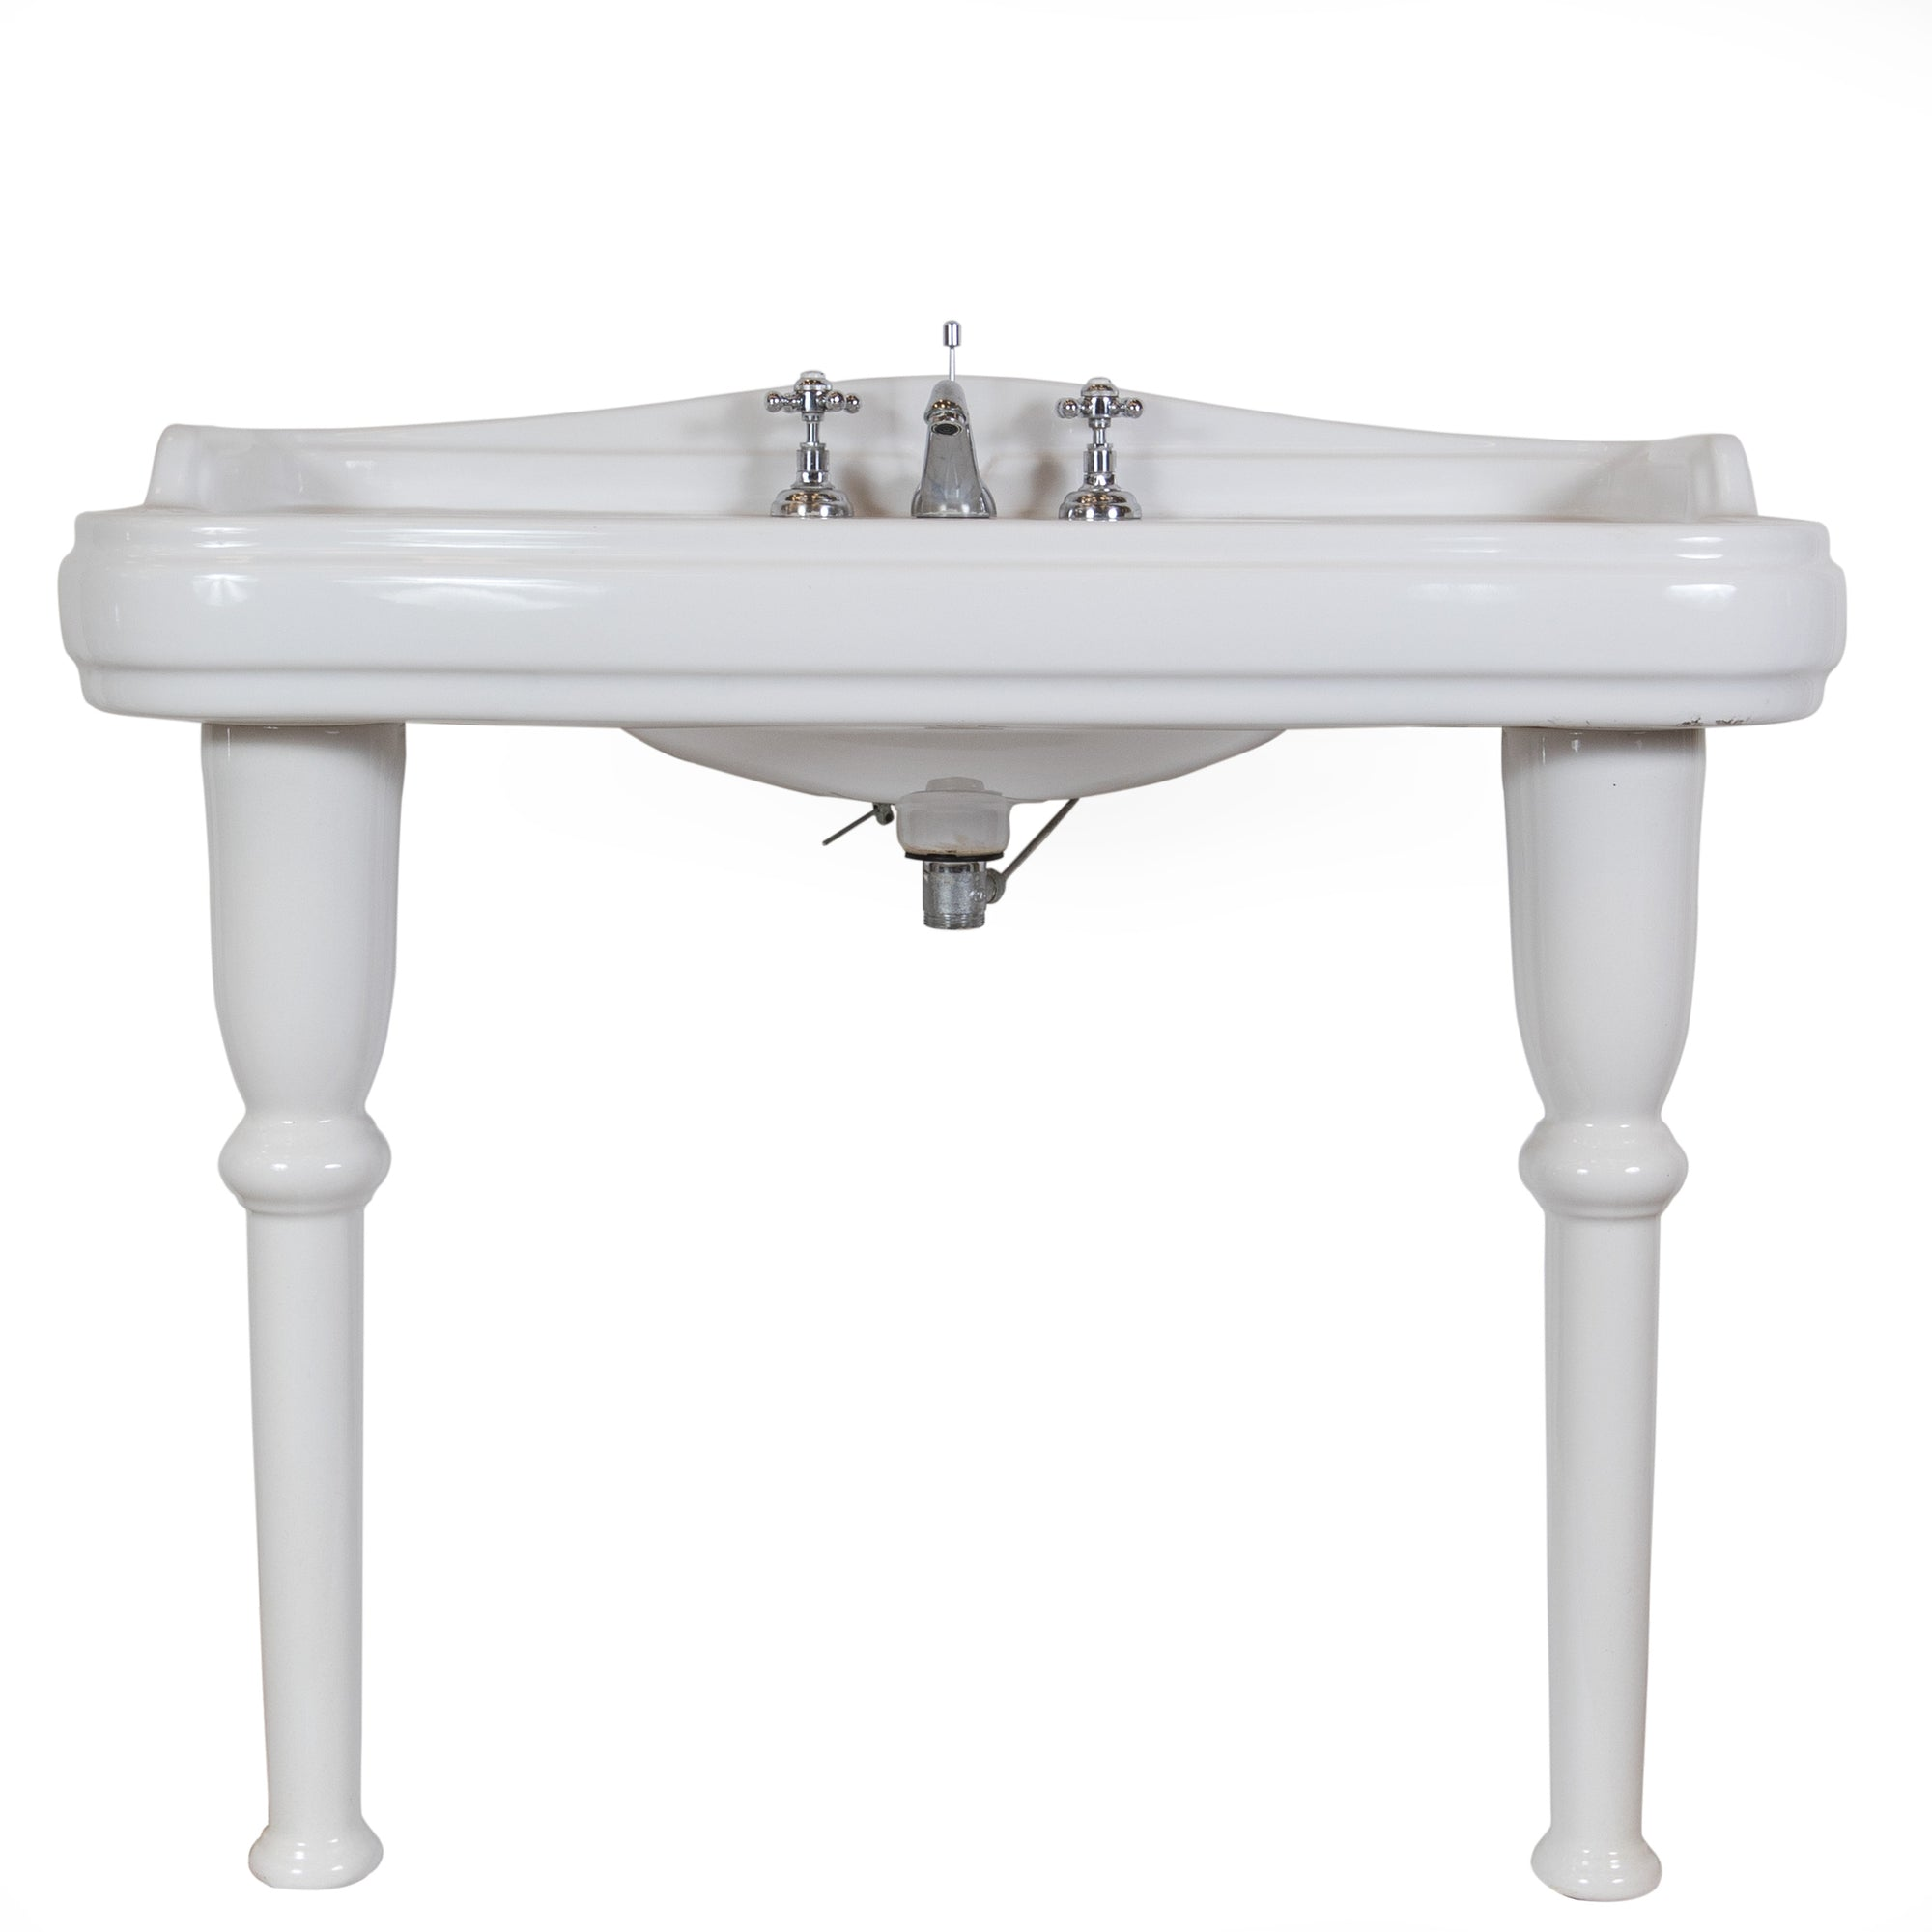 Reclaimed Pierre Cardin Porcelain Sink with Legs